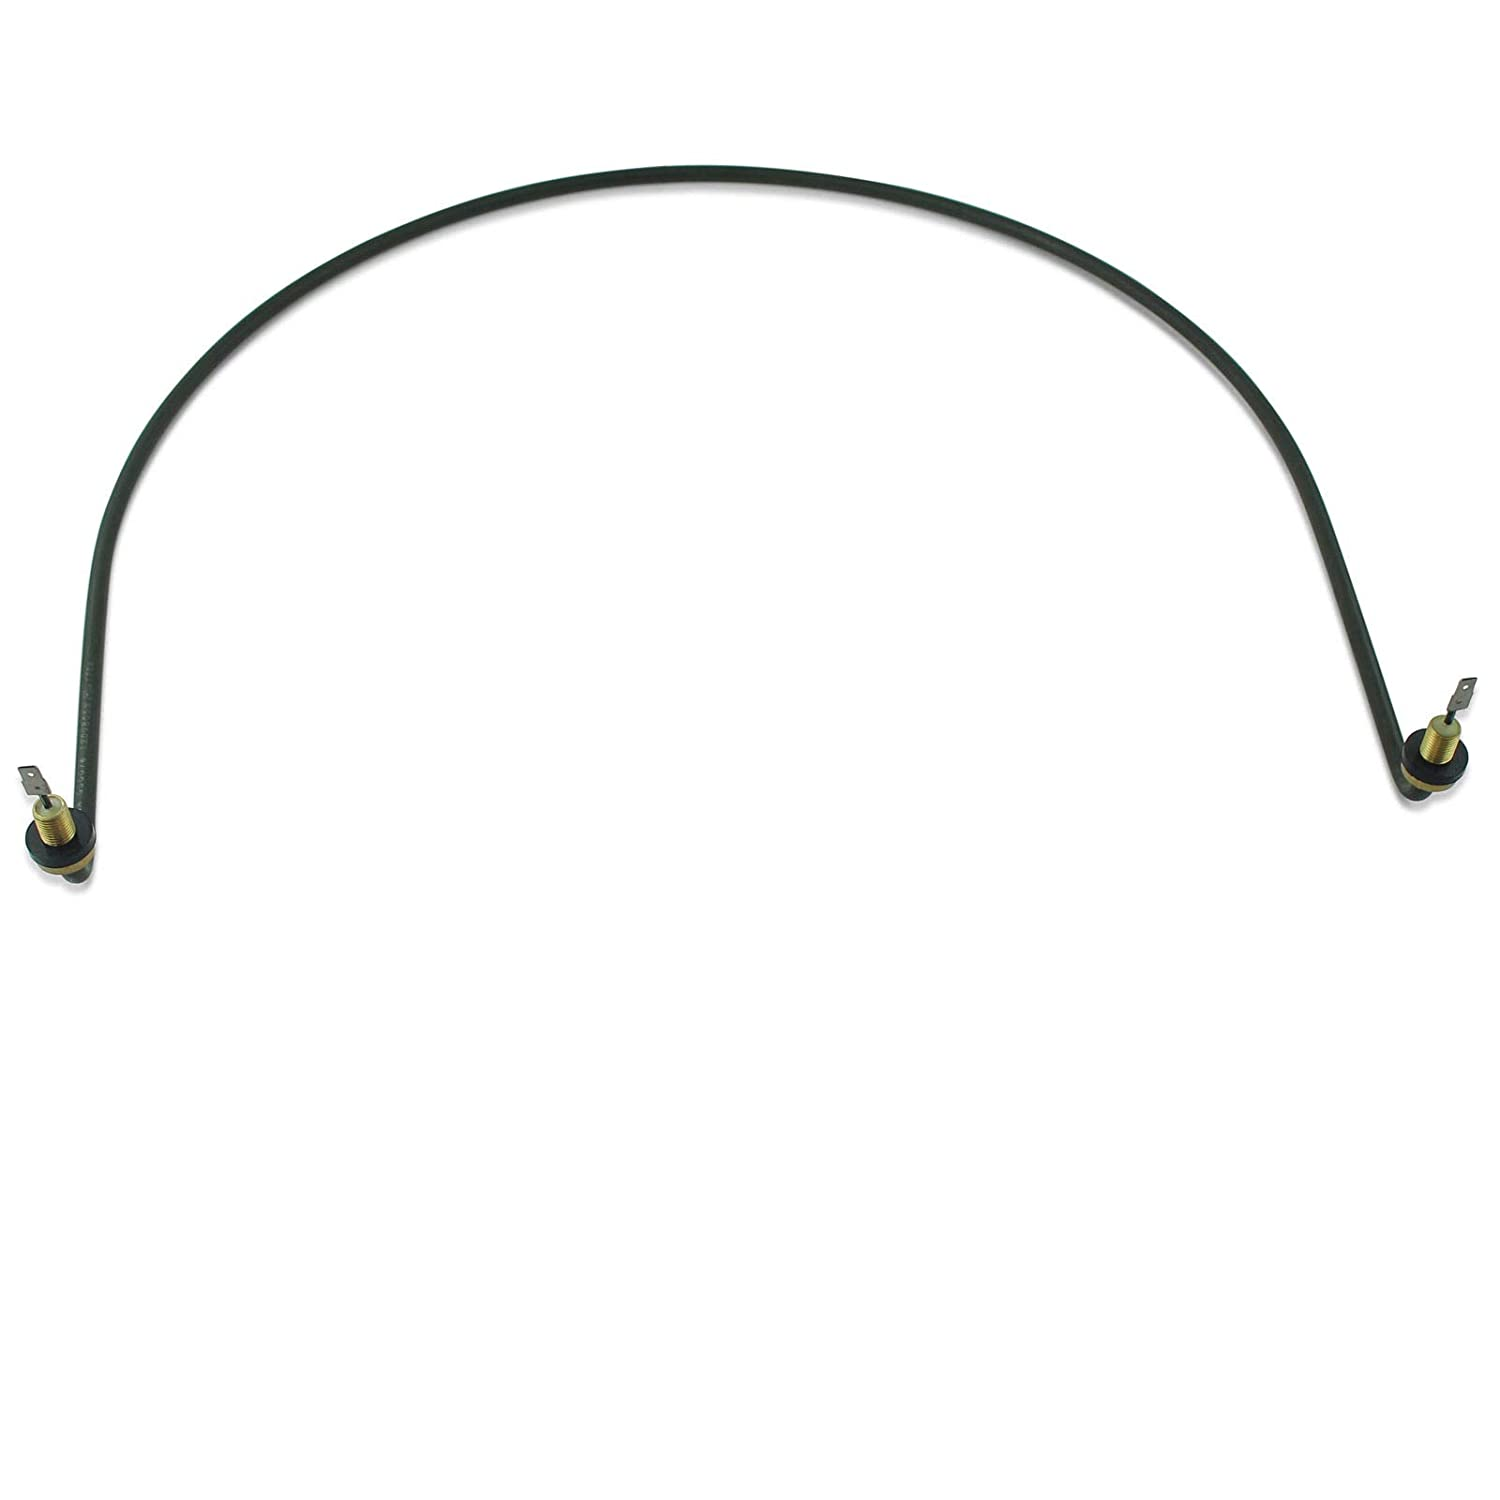 EXPW10134009 Dishwasher Heating Element for Whirlpool, Kenmore, Maytag, Amana Dishwashers (Replaces W10518394, AP5690151, PS8260087 )